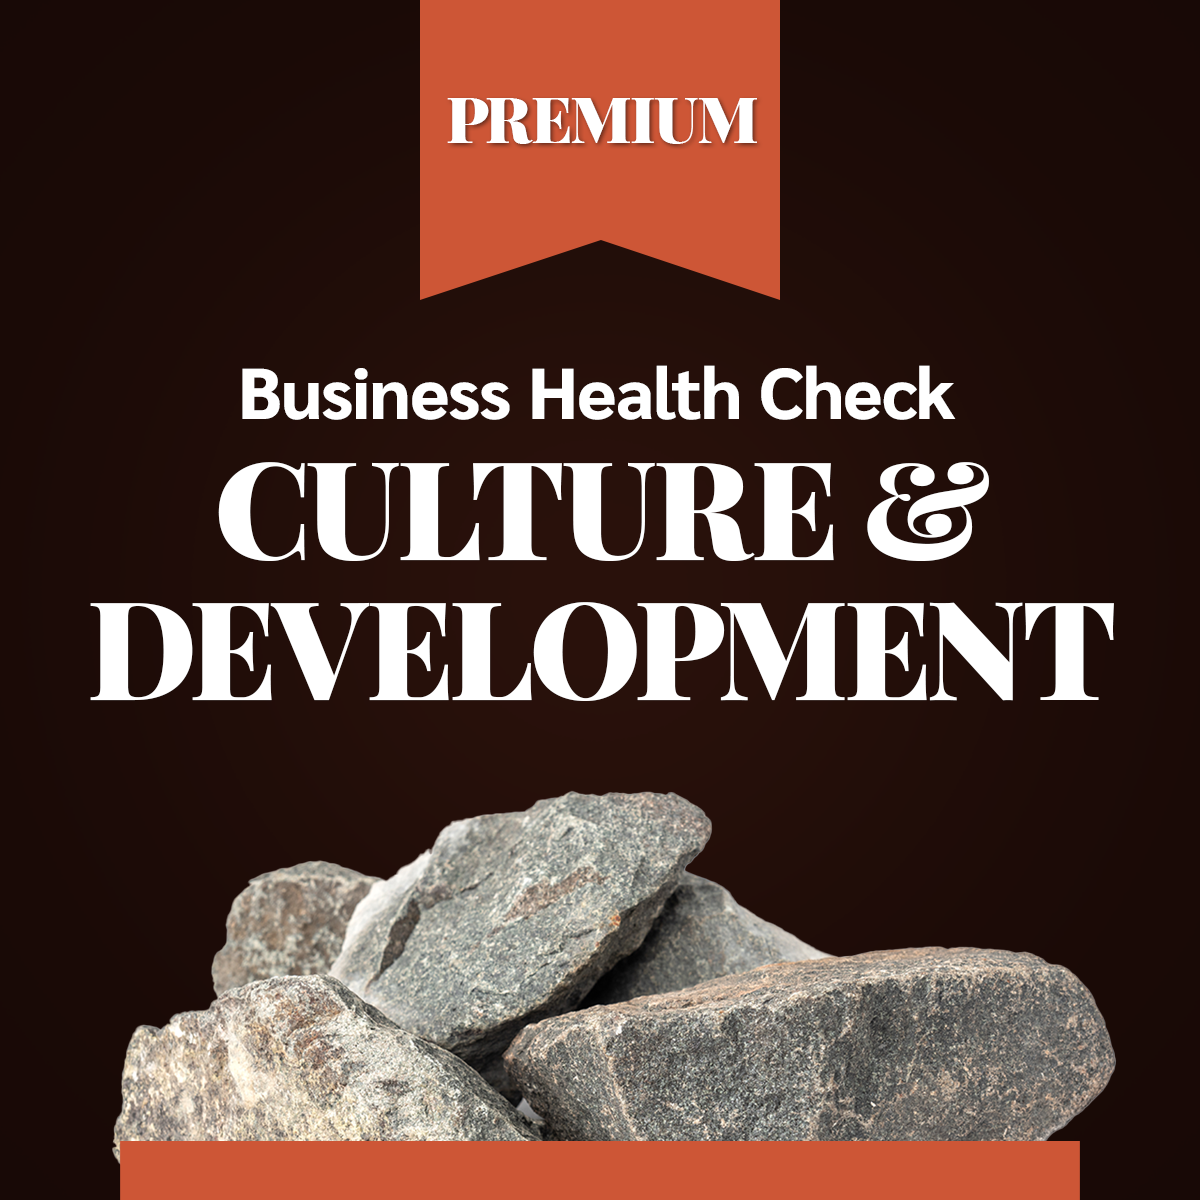 Business Health Check - Culture and development - PREMIUM